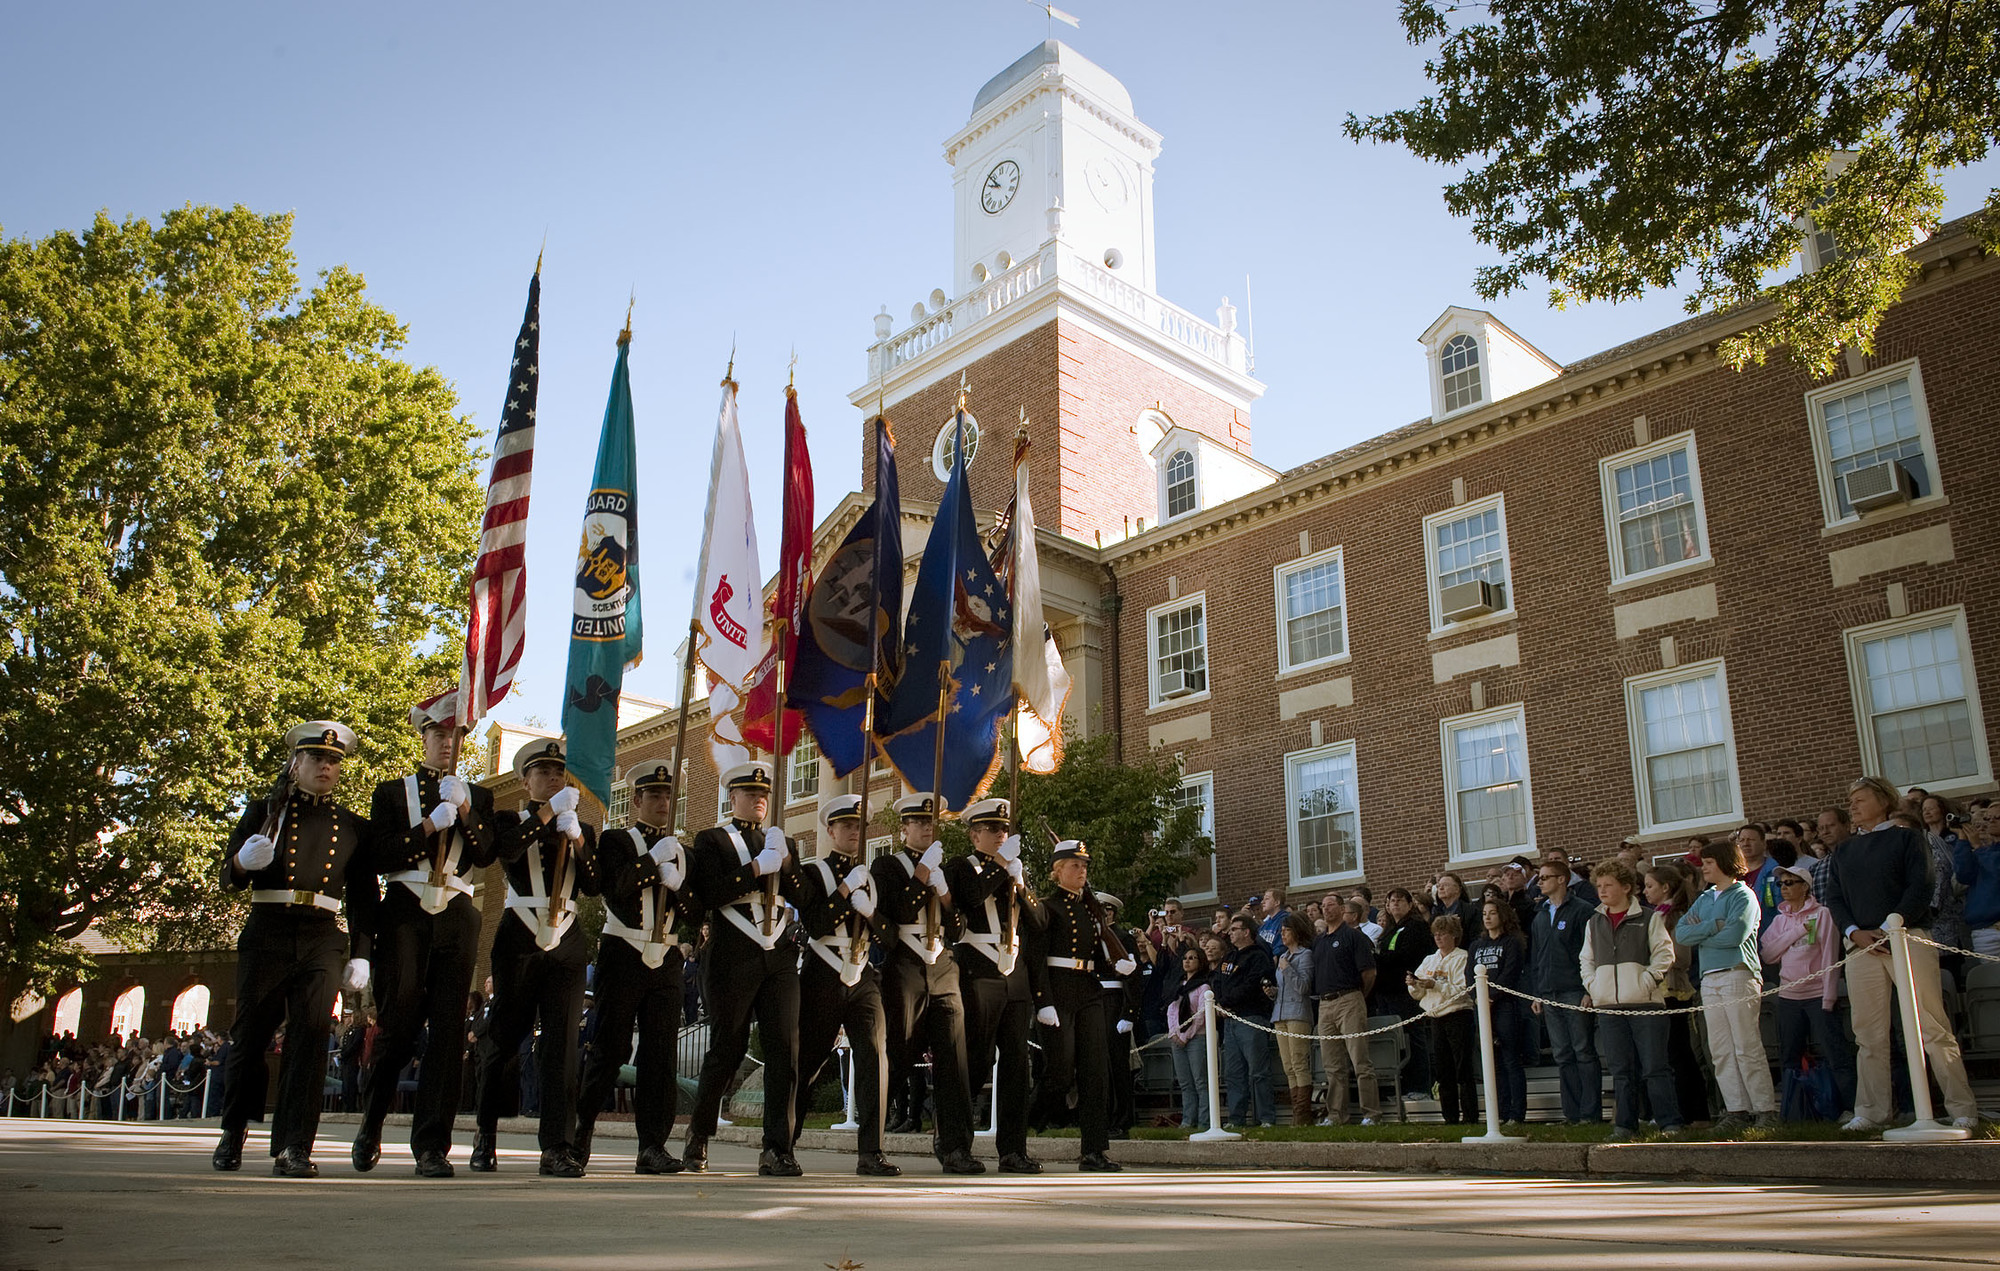 A color guard passes in front of Hamilton Hall at the Coast Guard Academy in New London, Conn.